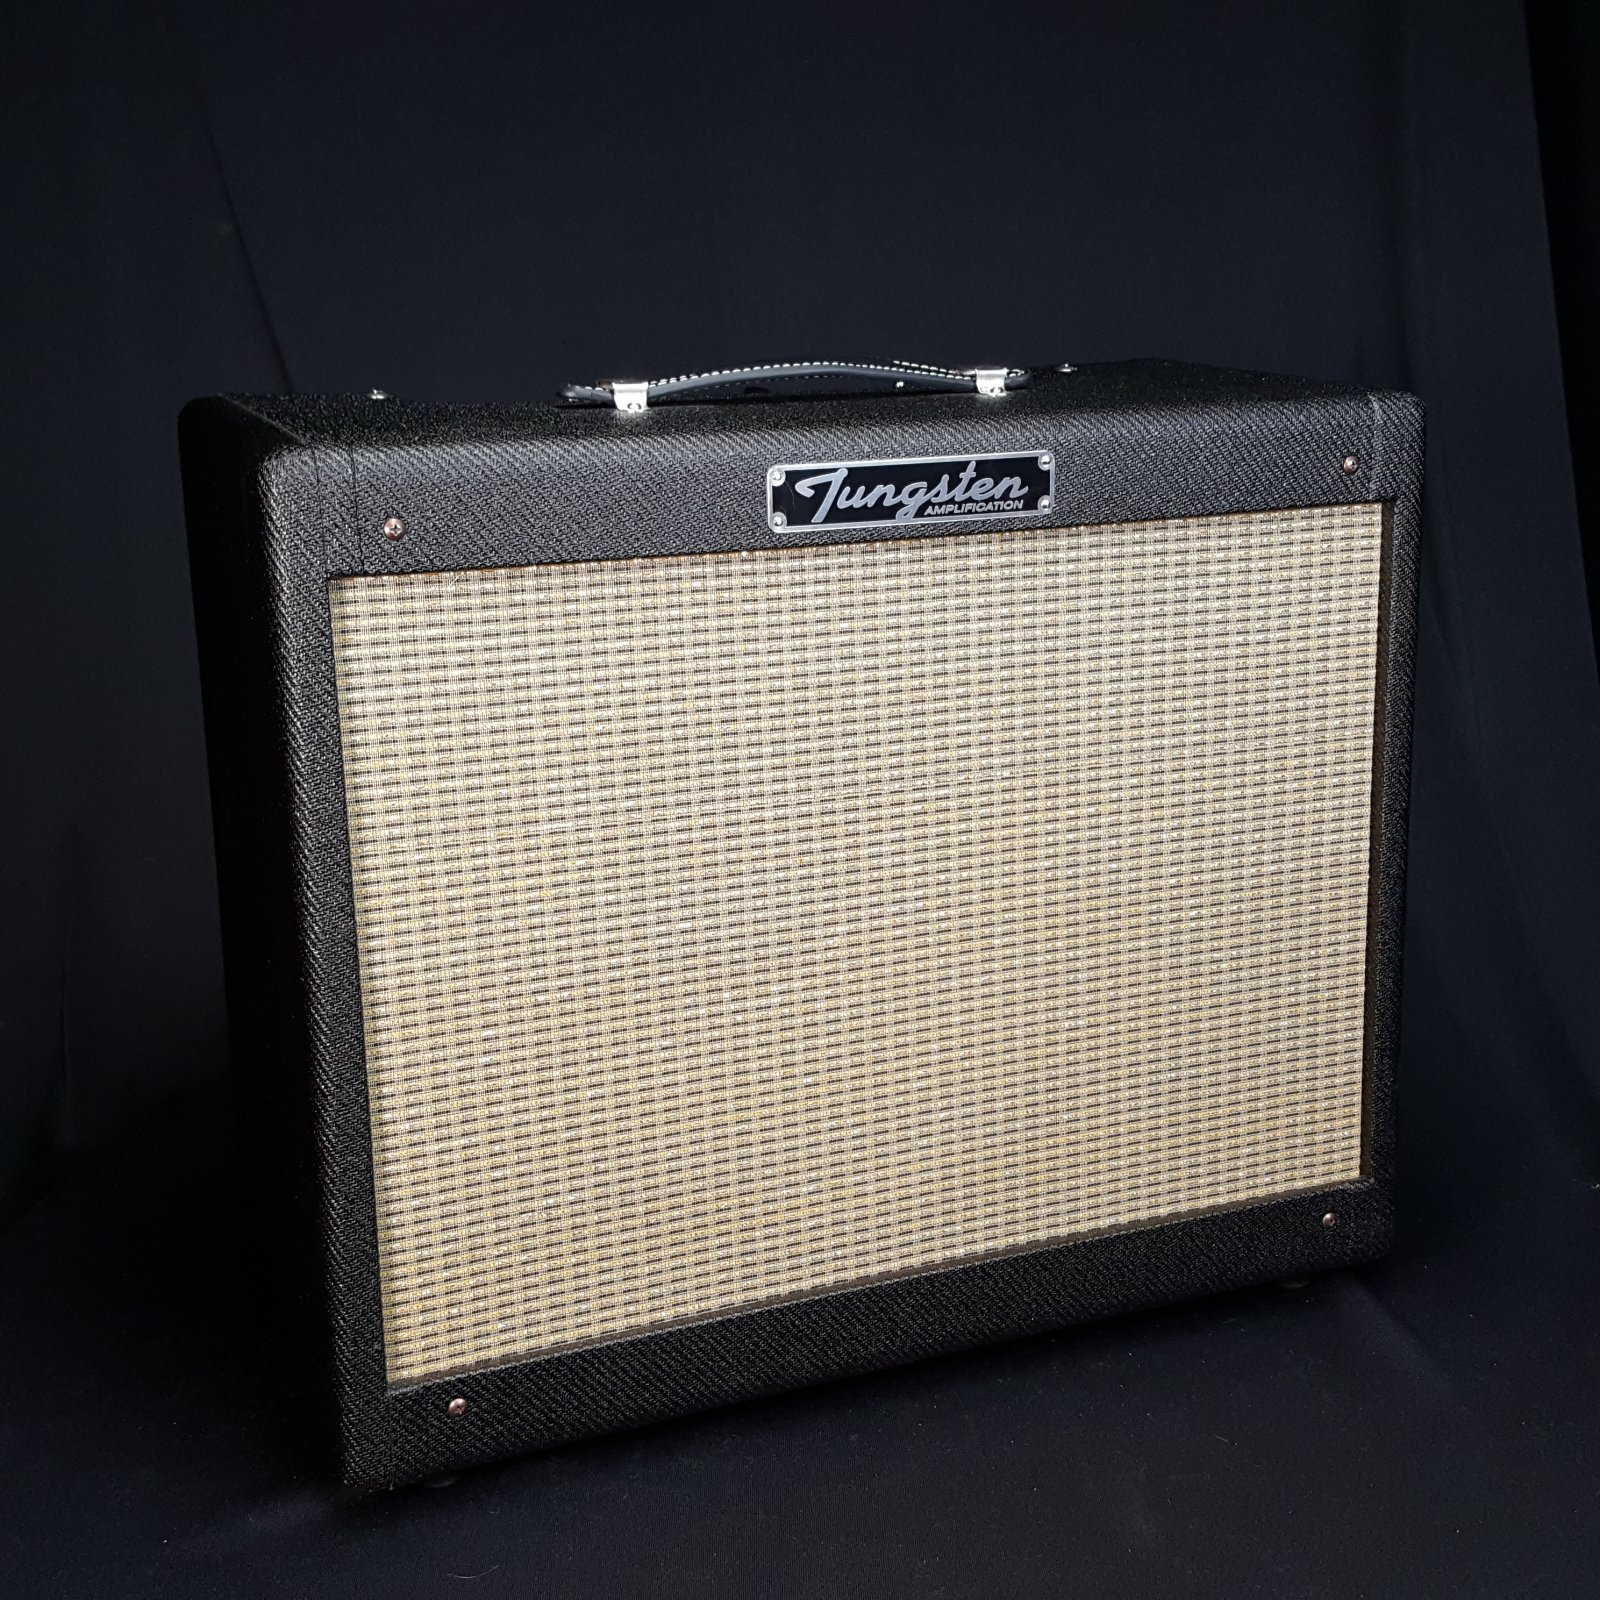 USED Tungsten Oxnard 12 Electric Guitar Amplifier w/ Cover